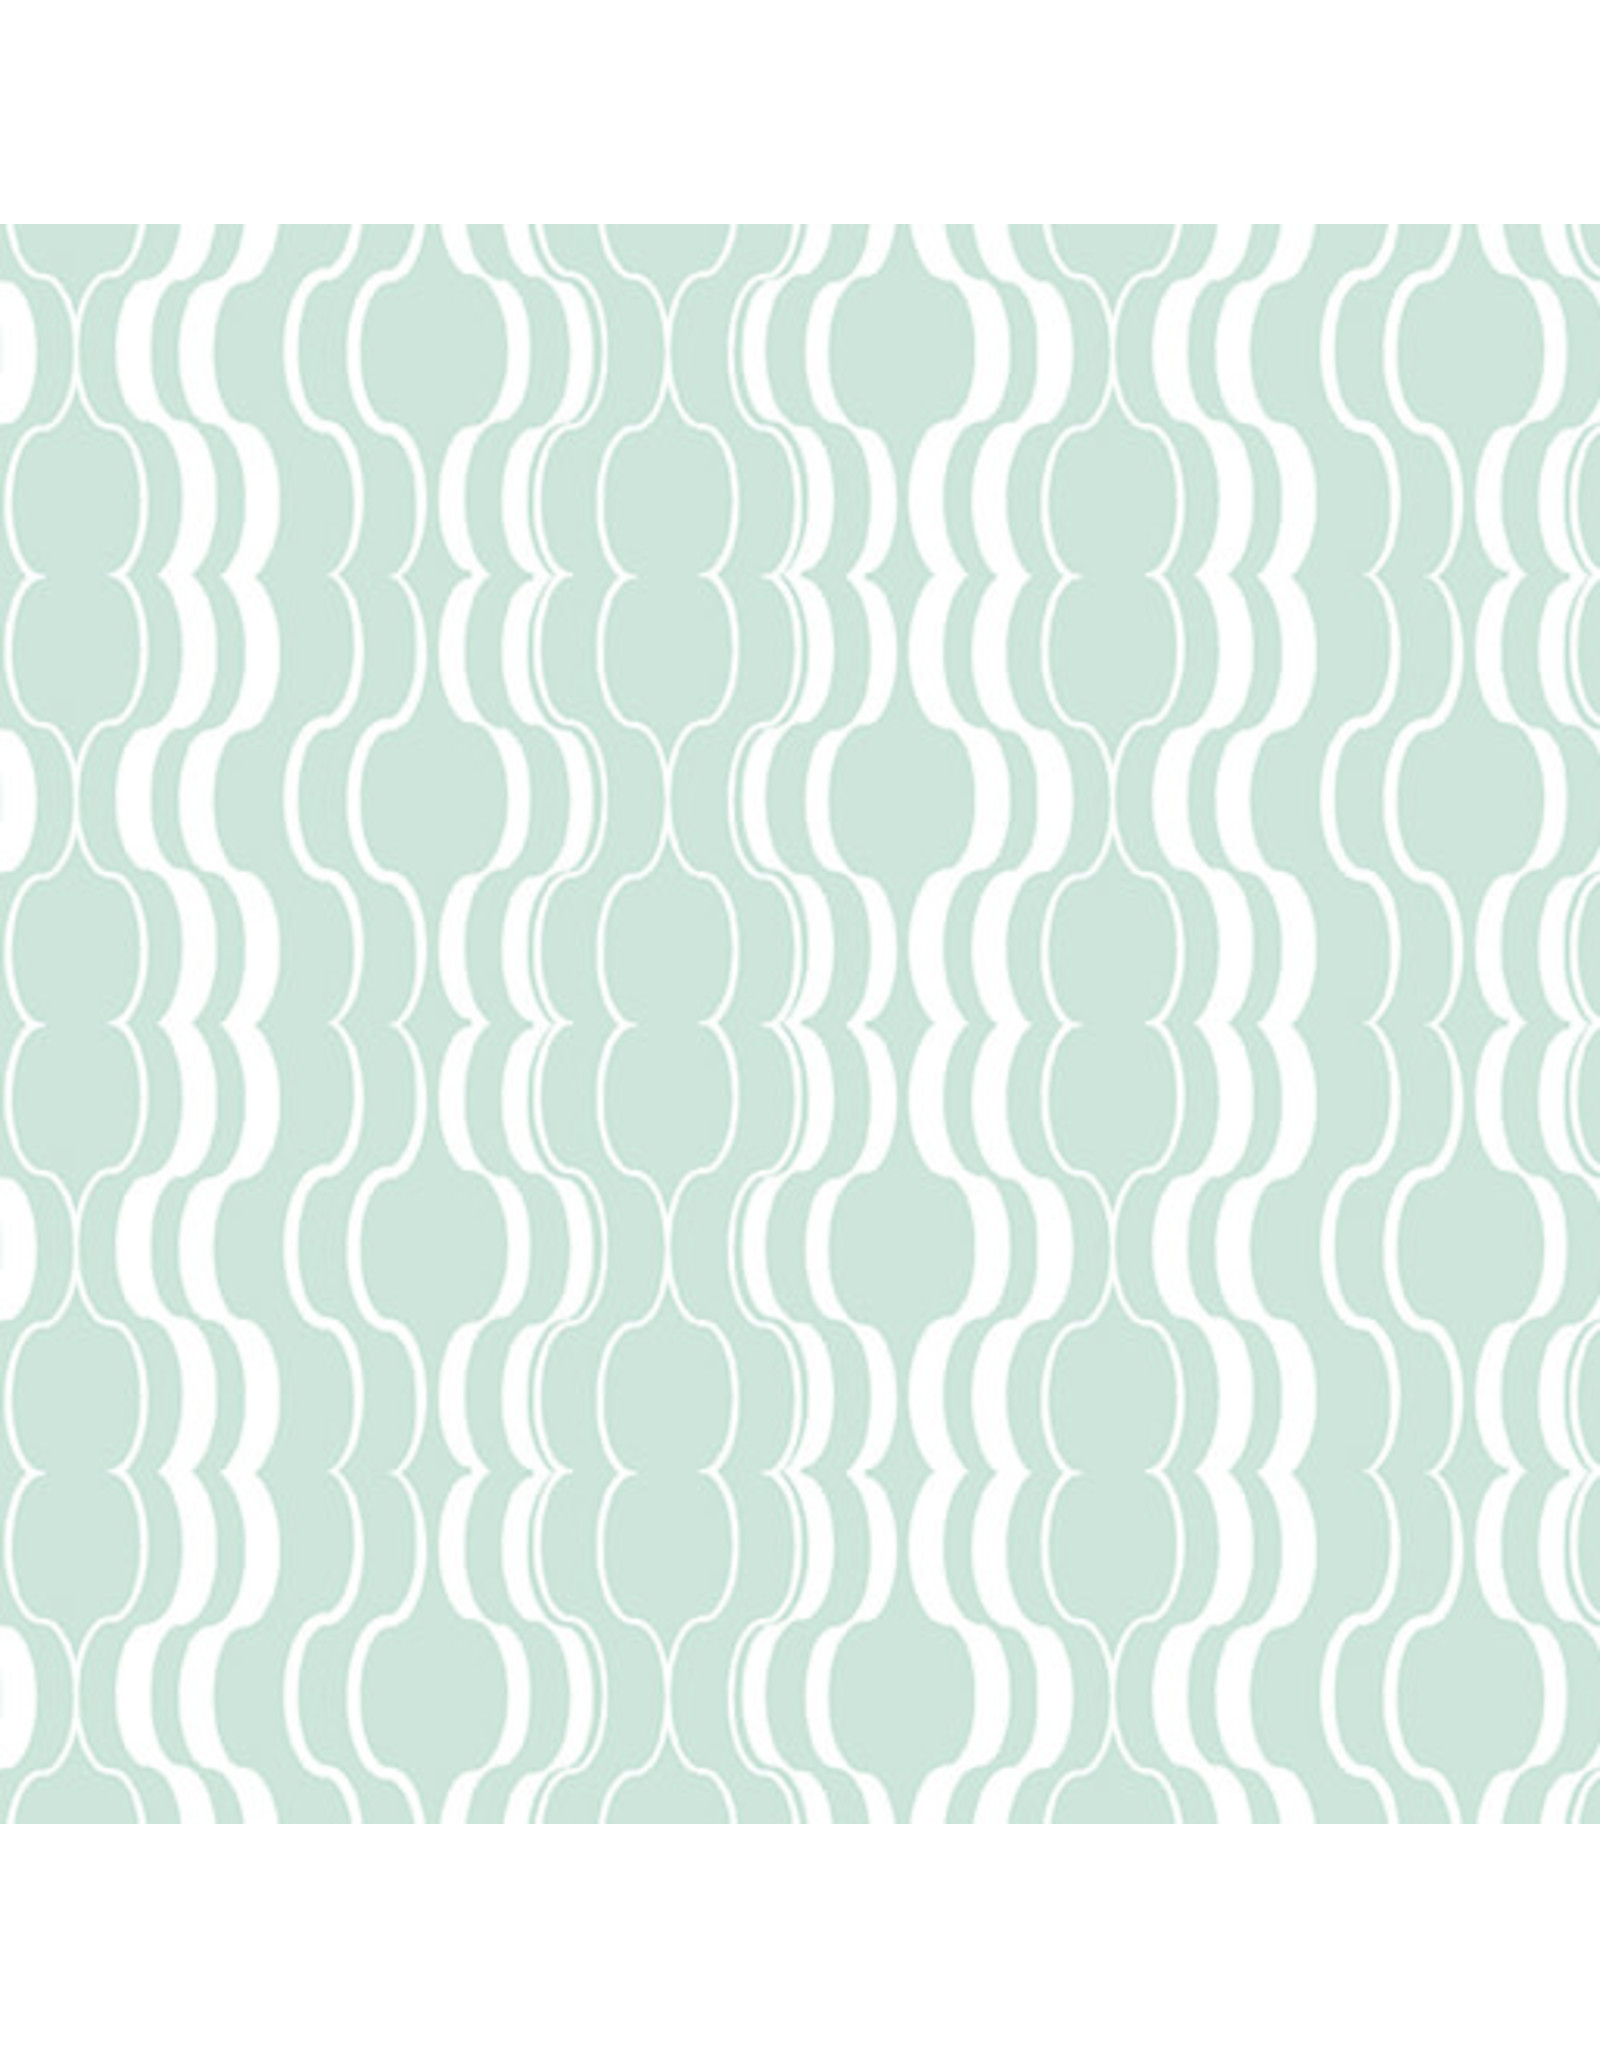 Contempo Good Vibes - Good Vibrations Light Teal